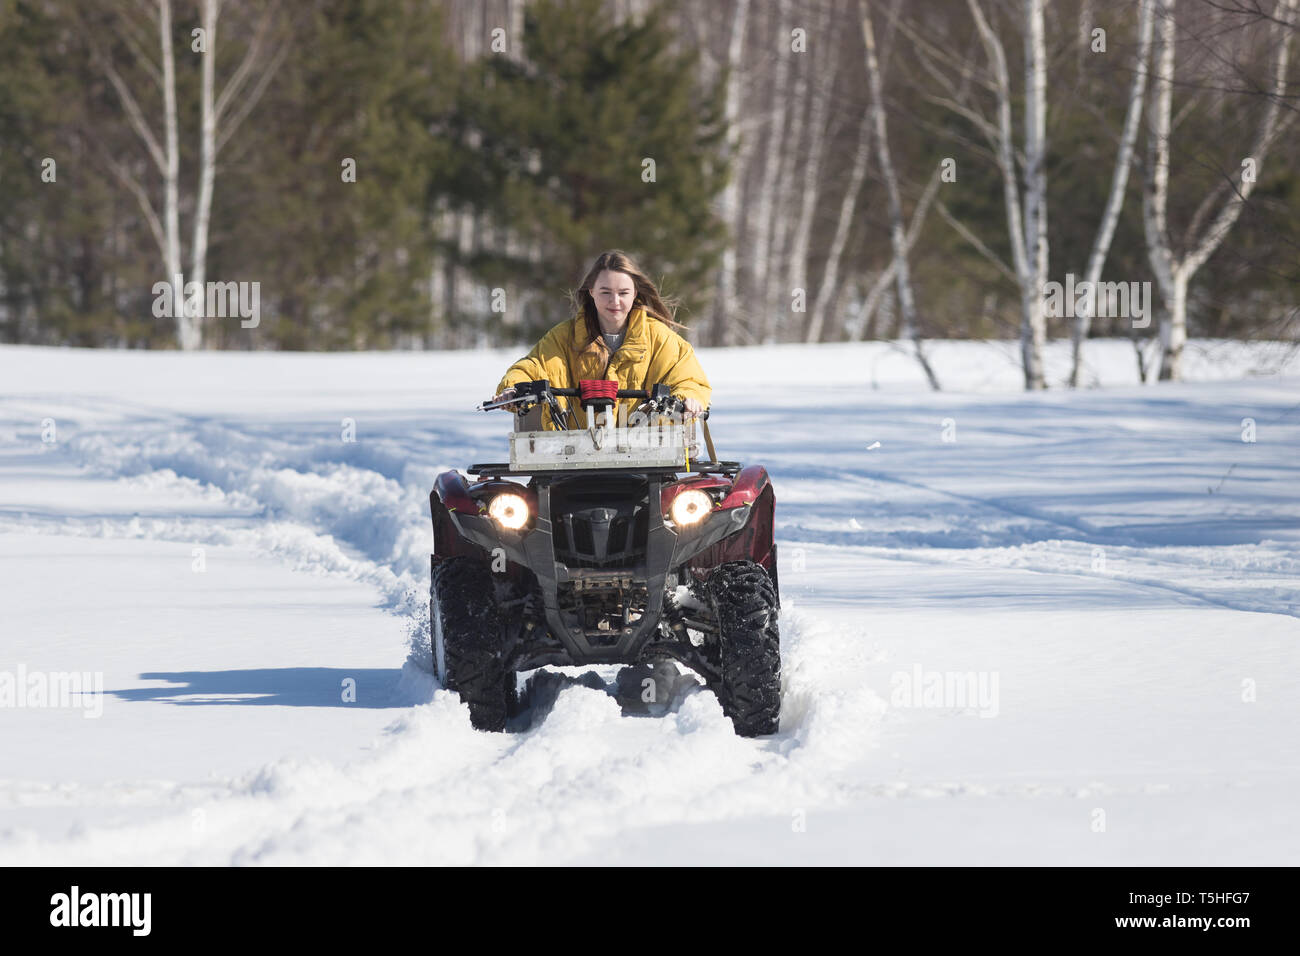 A winter forest. A young woman in yellow jacket riding snowmobile - Stock Image